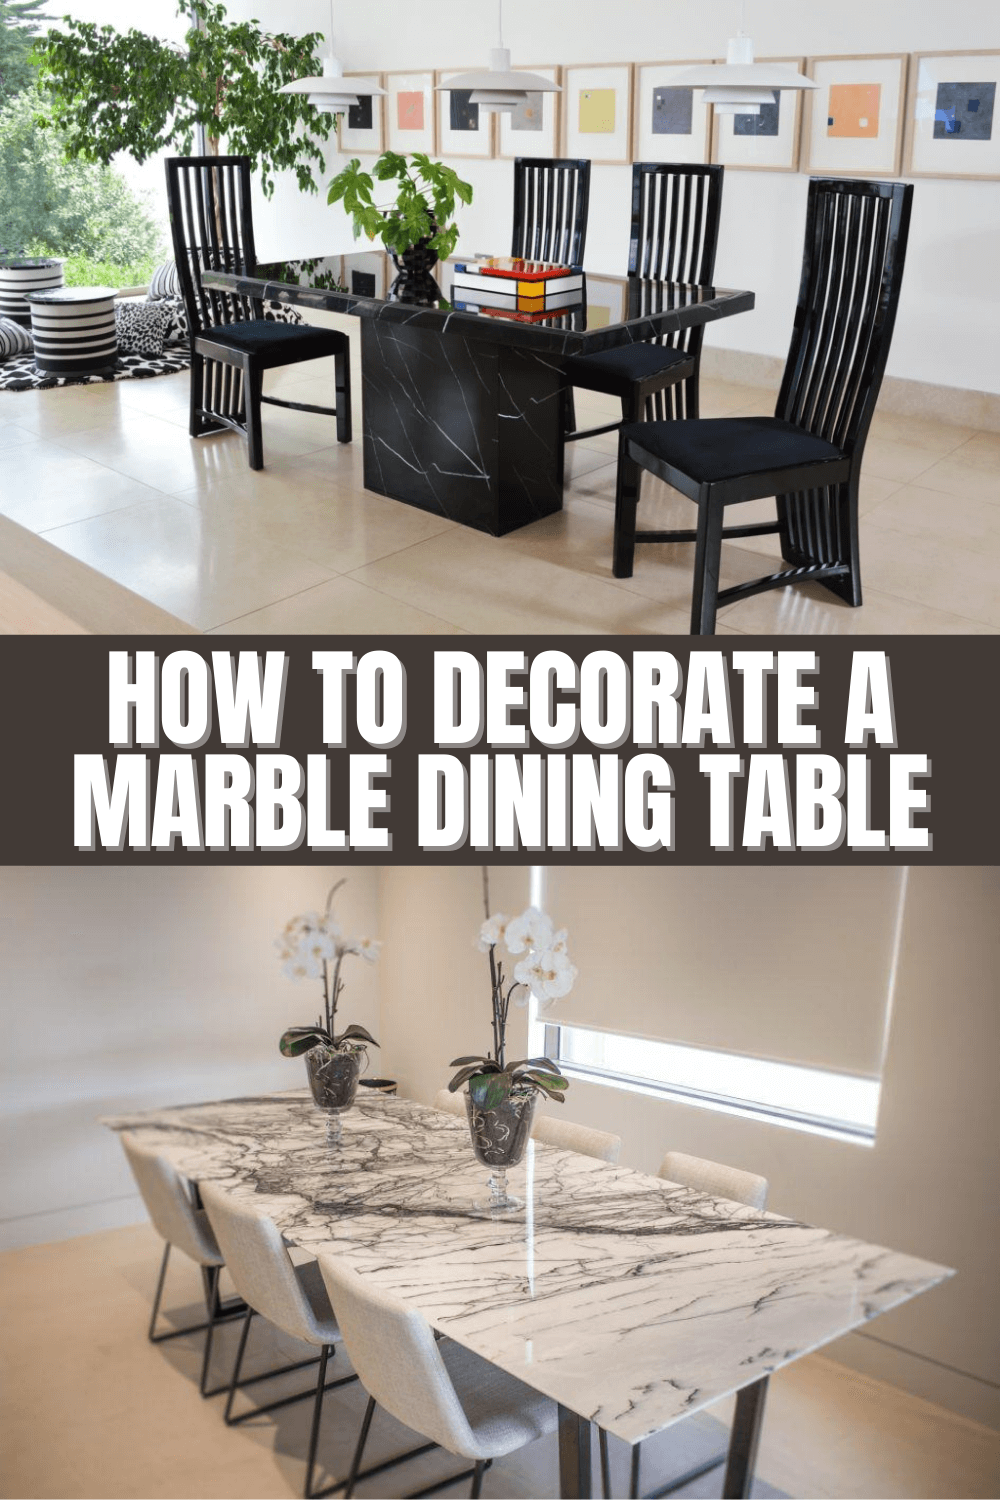 HOW TO DECORATE A MARBLE DINING TABLE